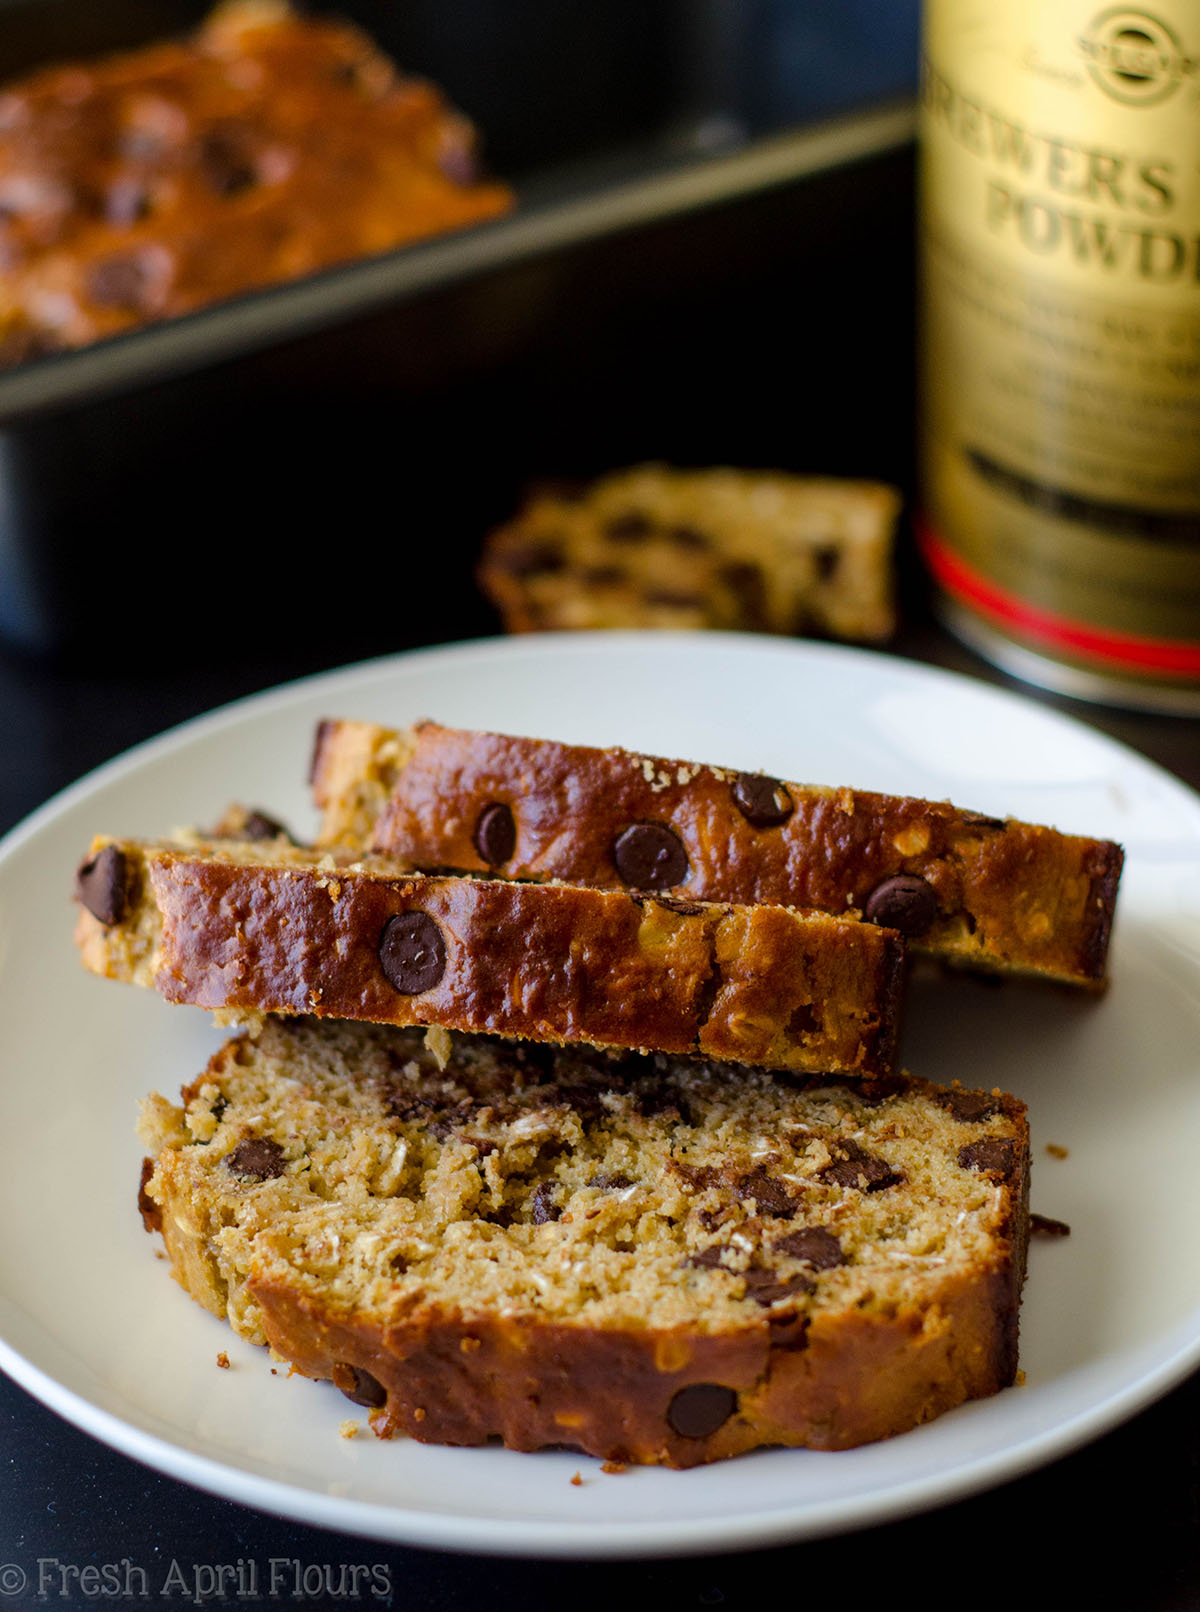 oatmeal chocolate chip lactation quick bread slices on a plate